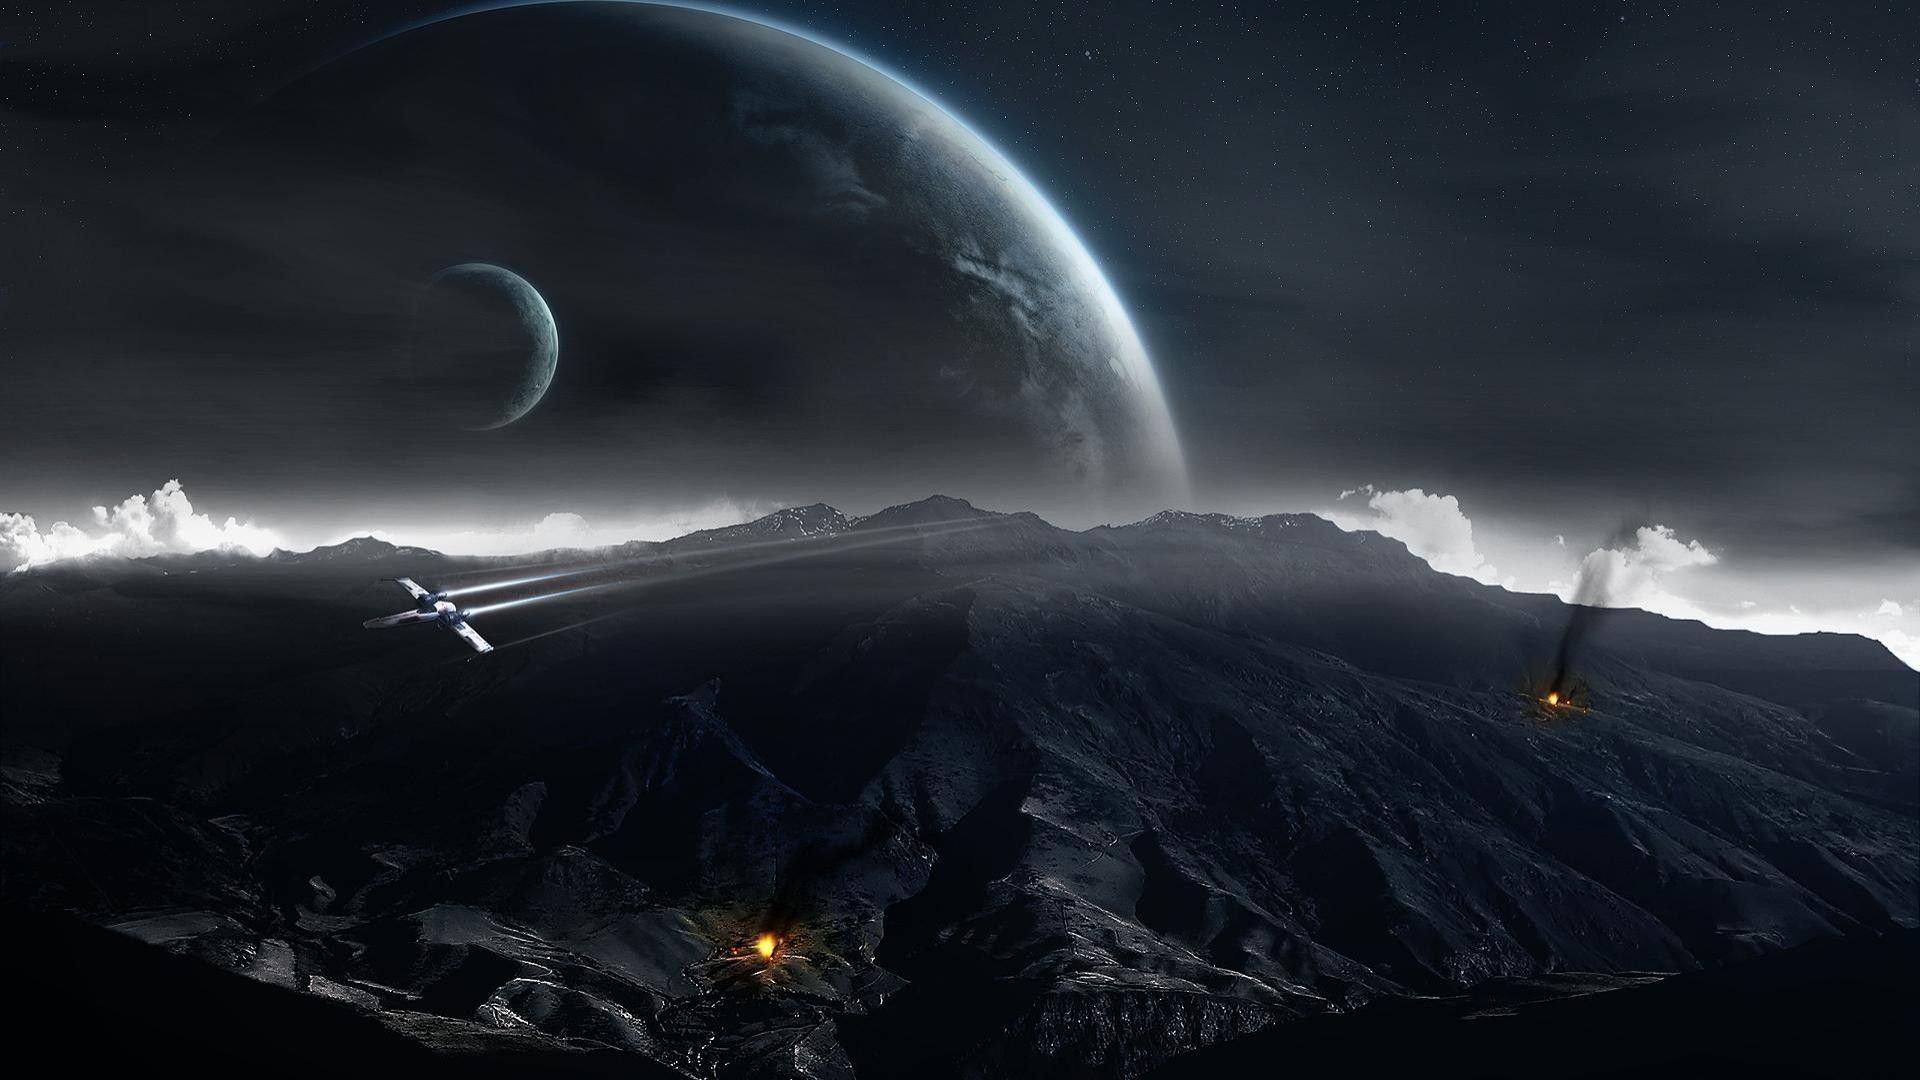 Star Wars Space Backgrounds Wallpaper Cave Star Wars Wallpaper Space Art Wallpaper Dark Planet